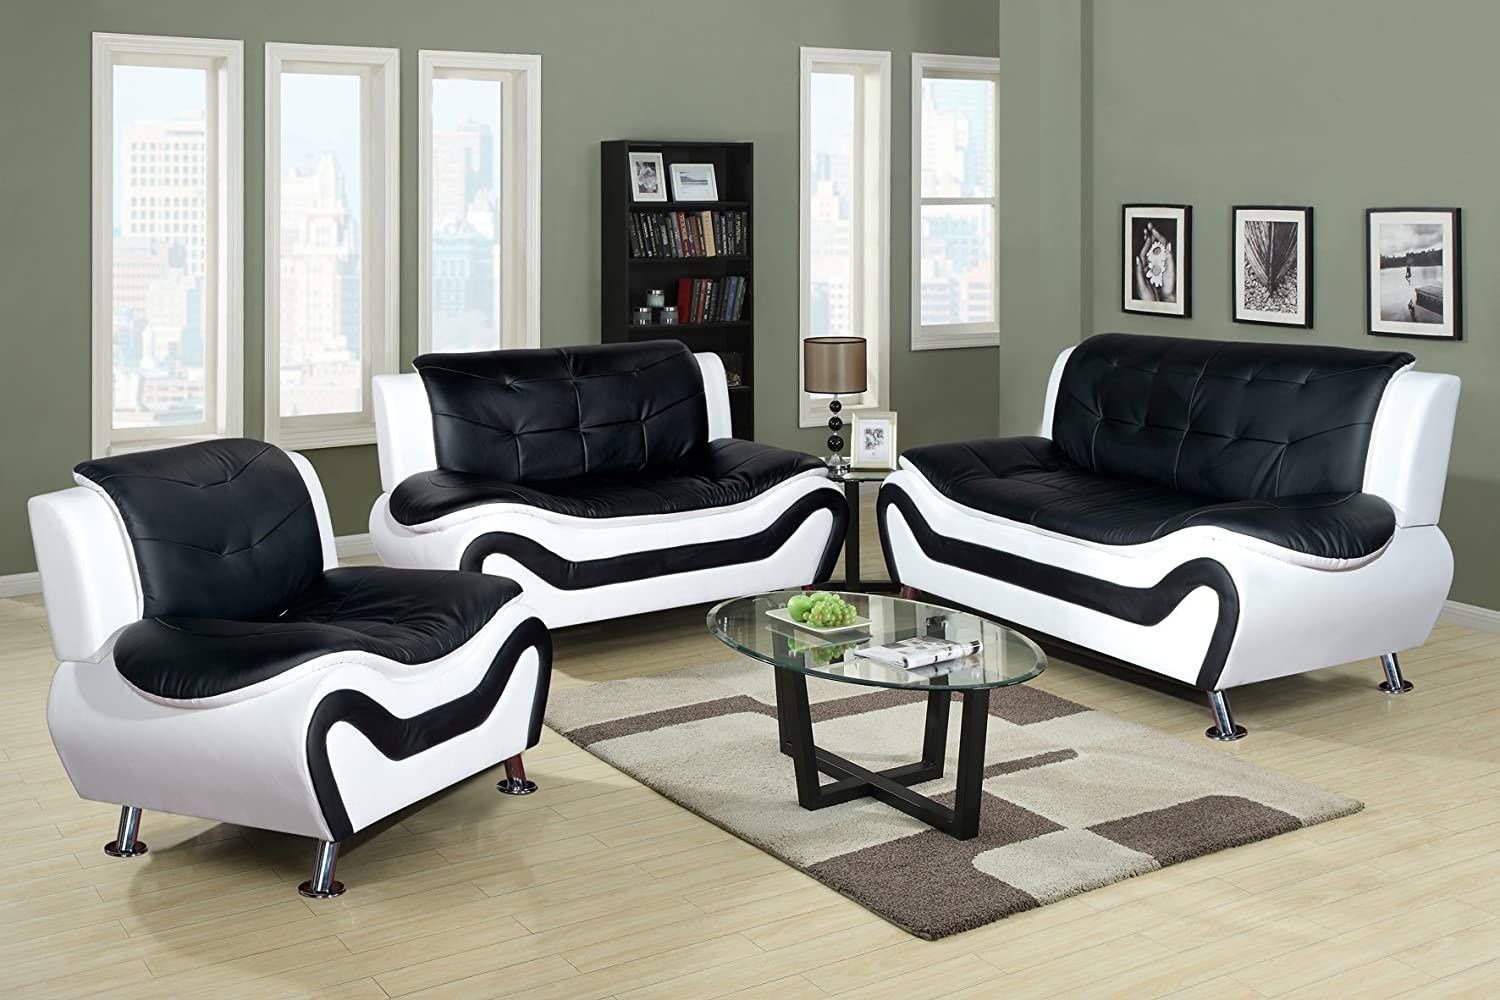 Amazon Lifestyle Furniture Veneto Sofa Set Black White Kitchen Dining